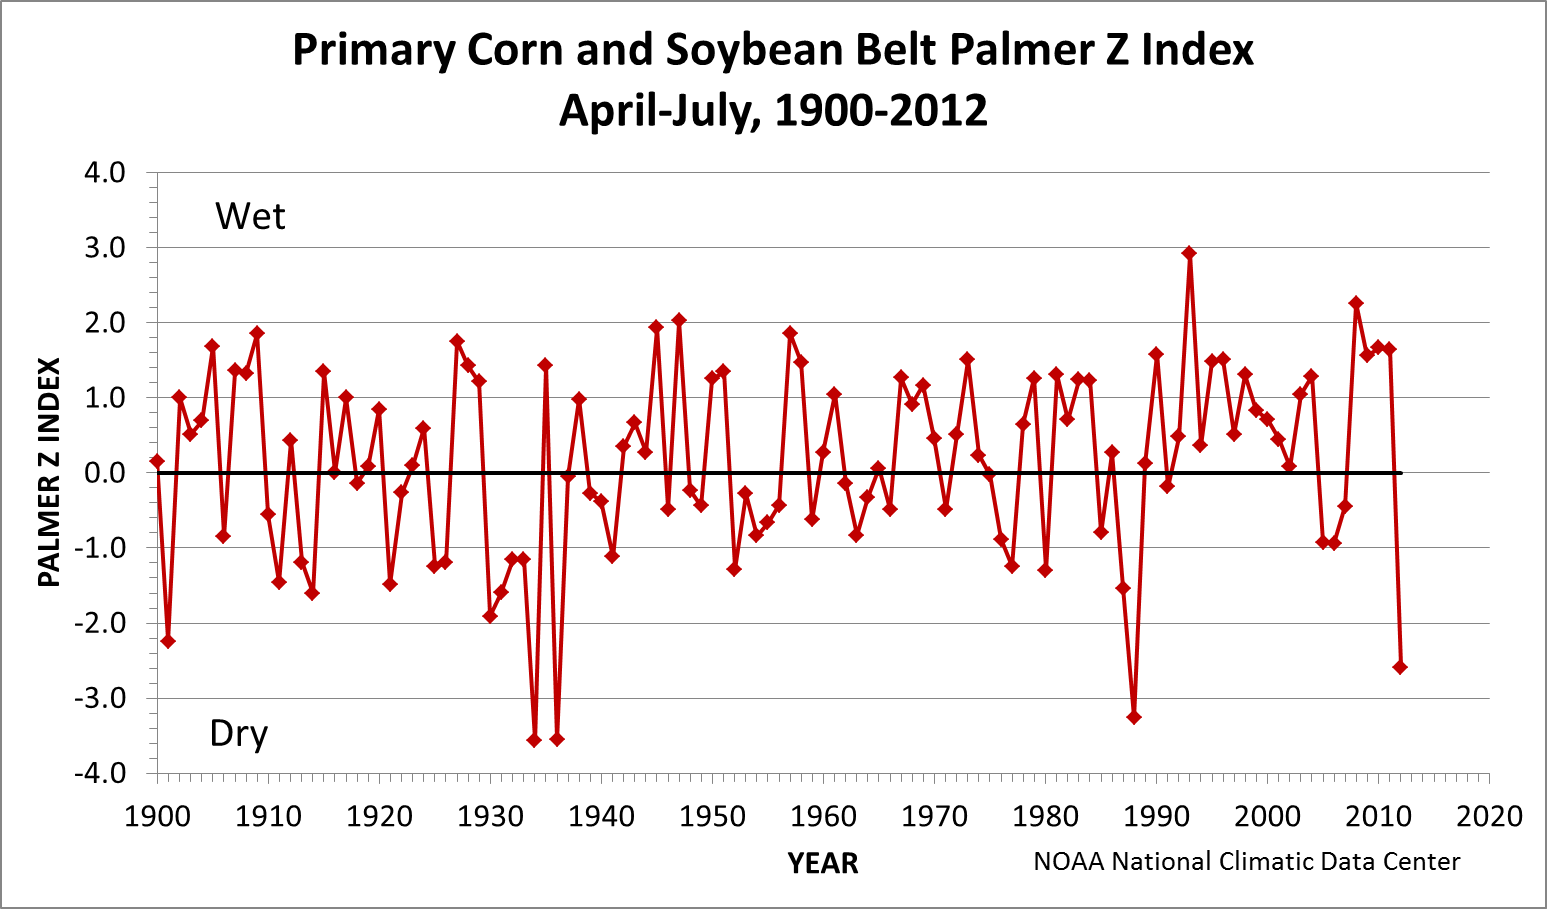 Primary Corn and Soybean Belt Palmer Z Index, April-July, 1895-2012